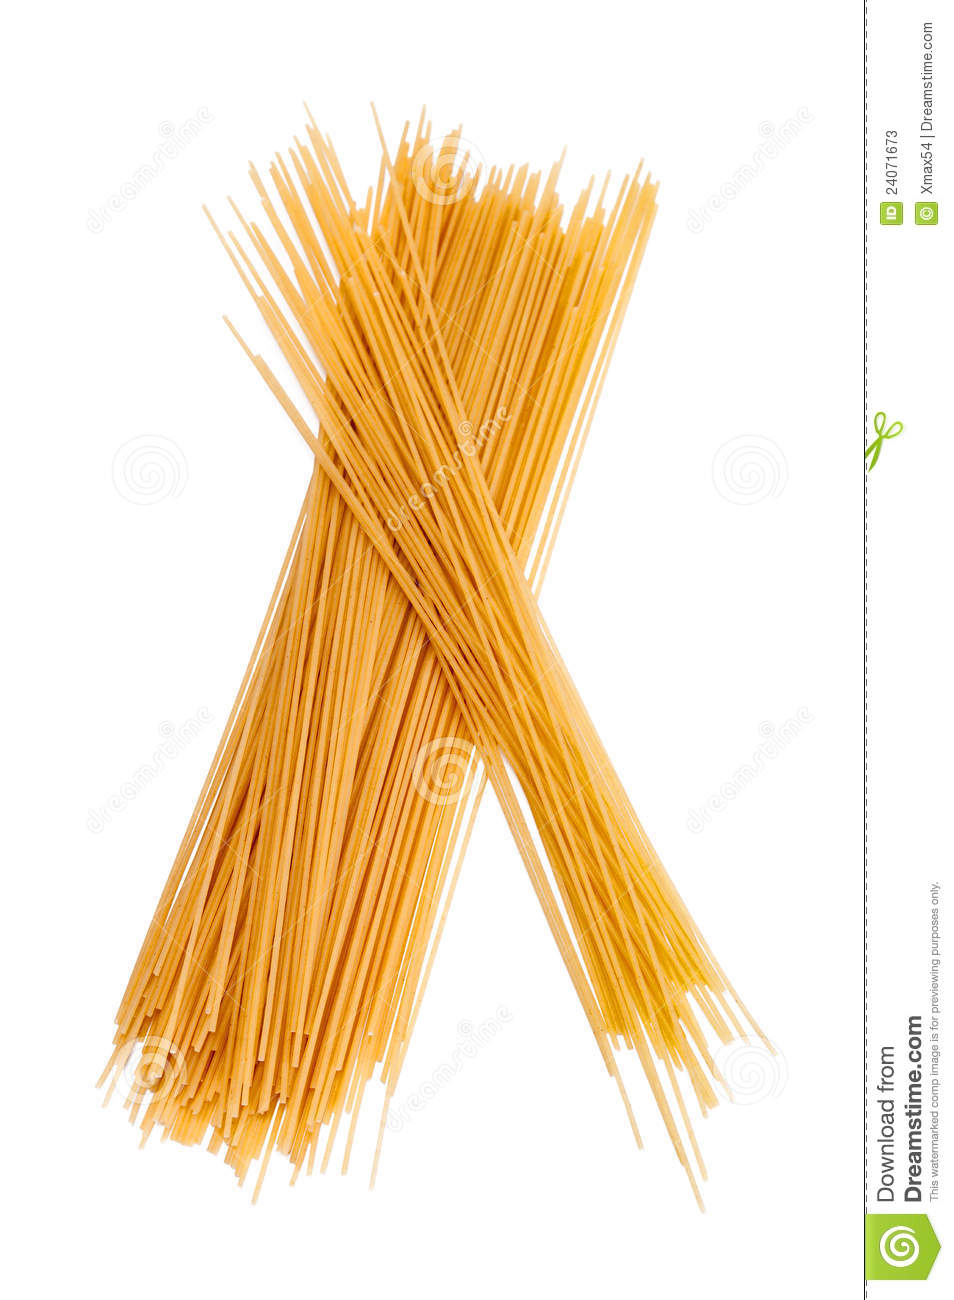 how to cook spaghetti noodles fast